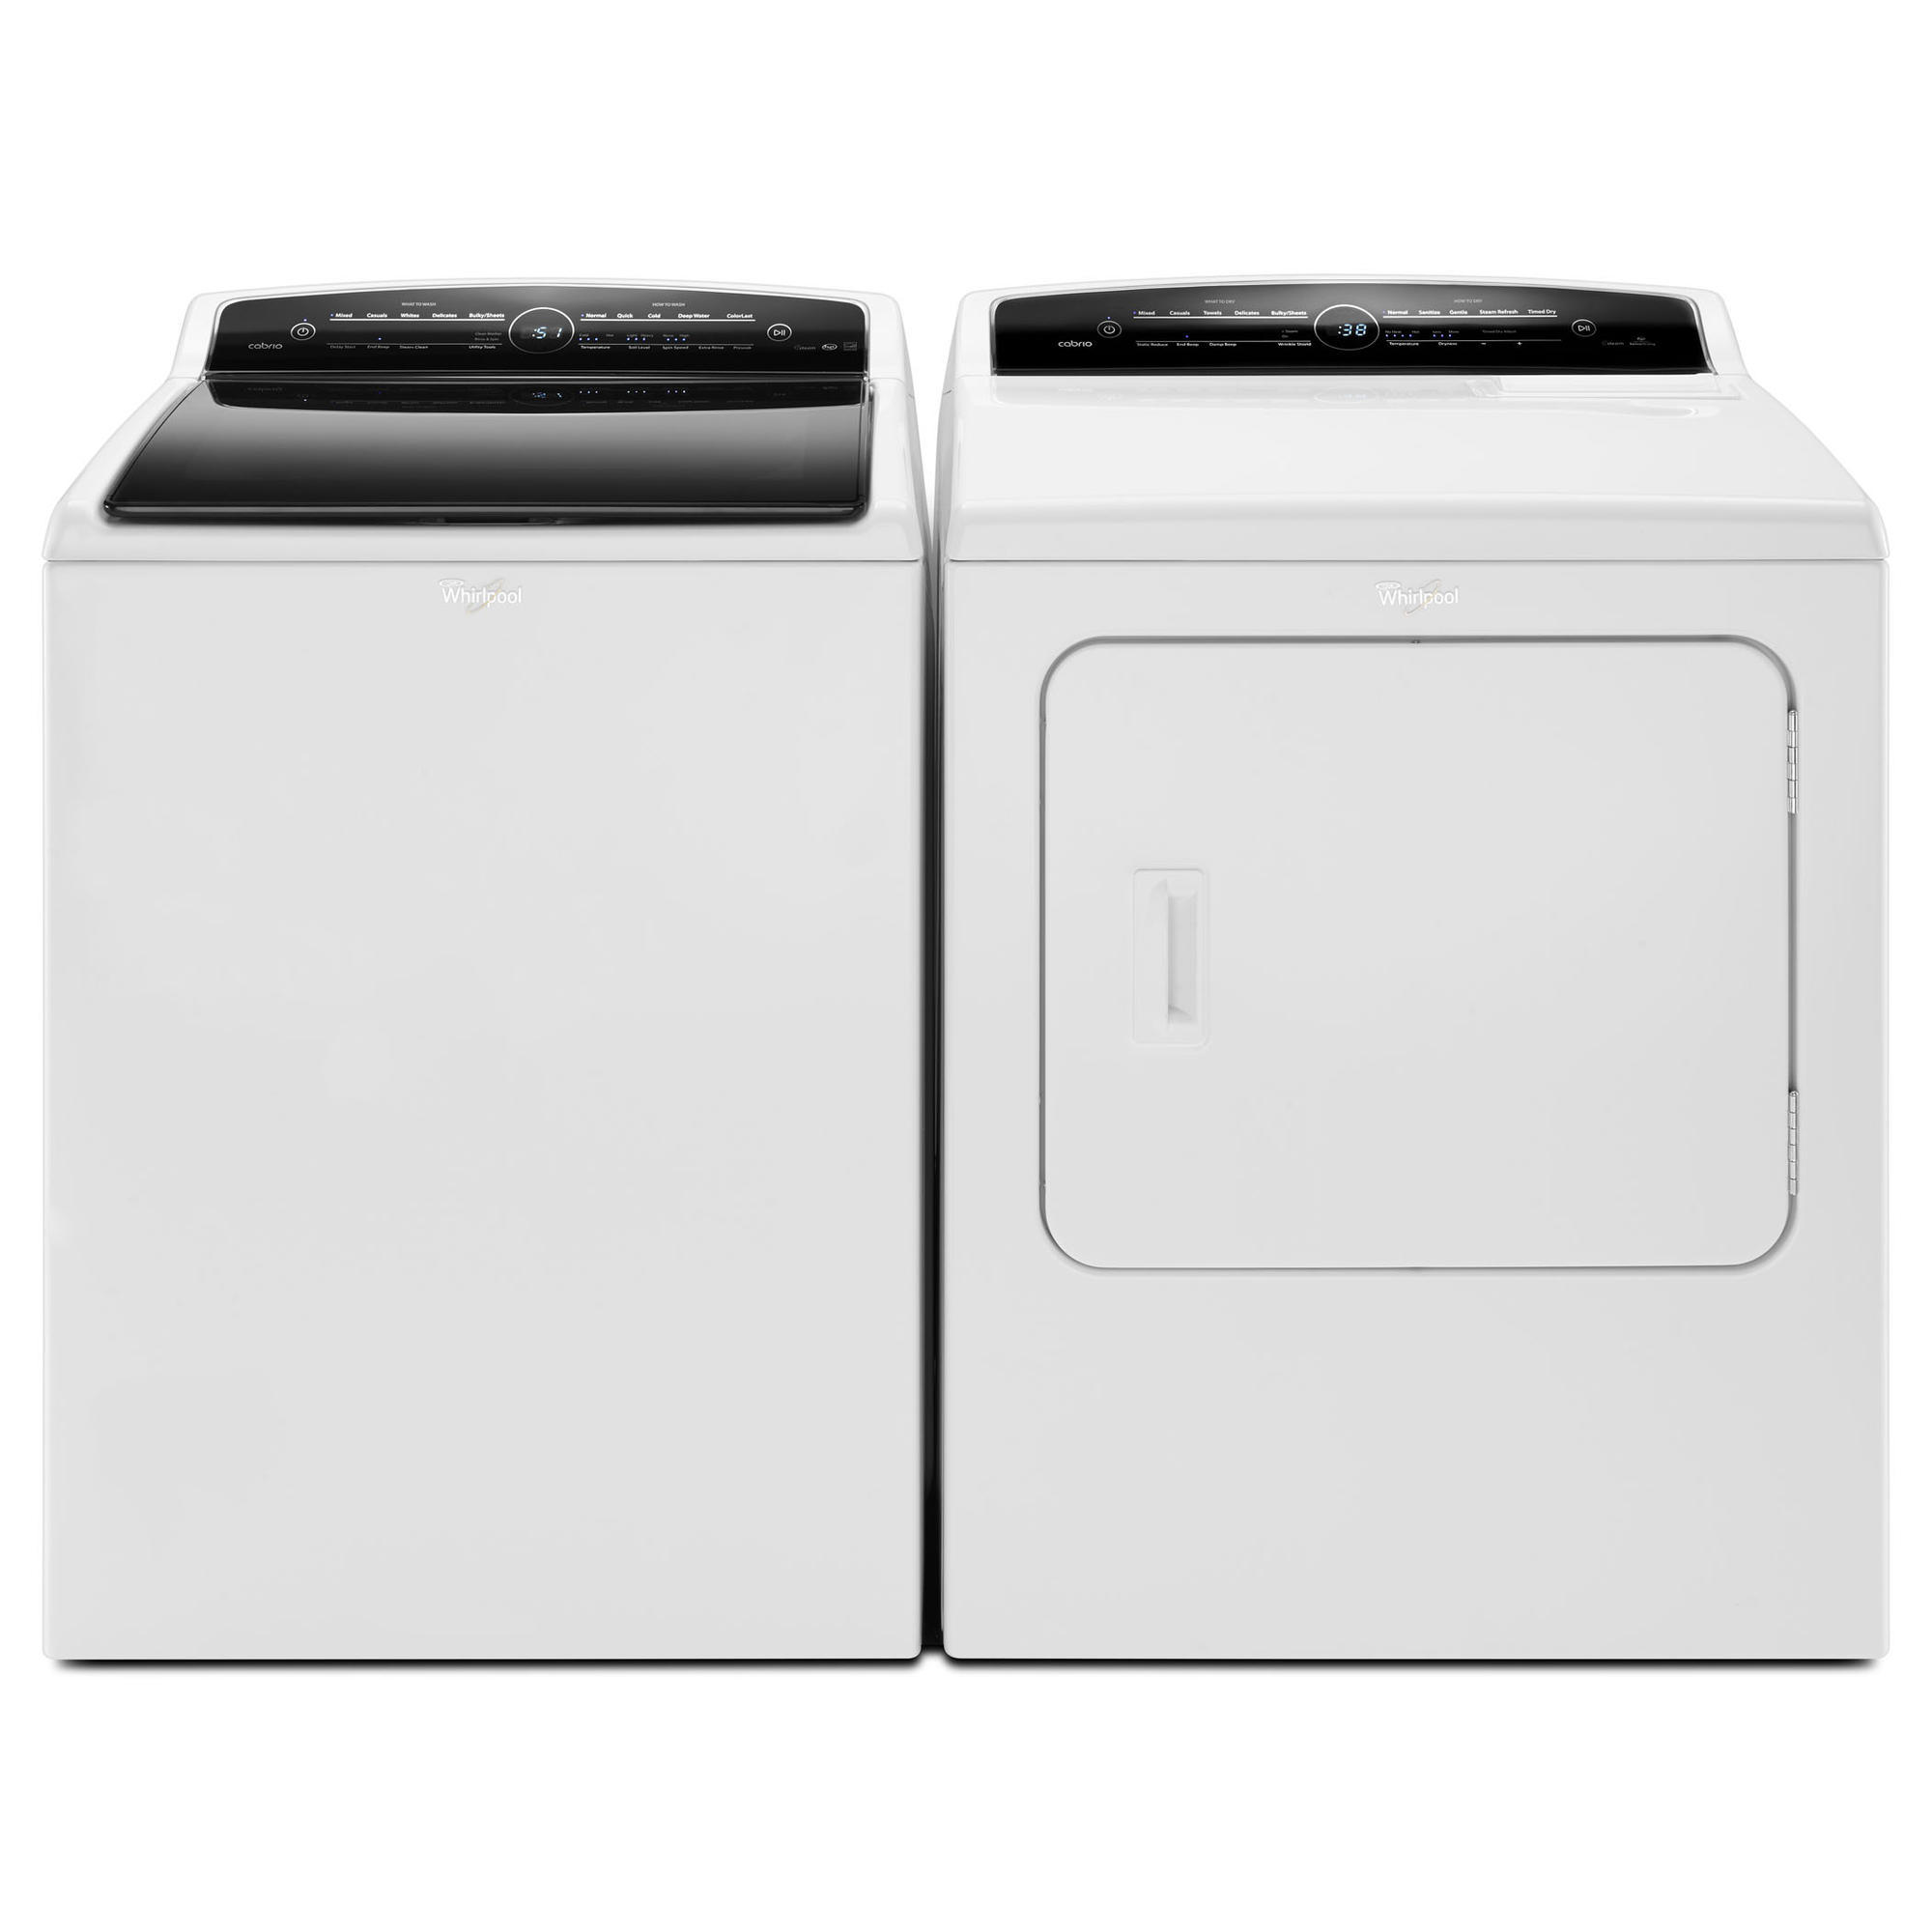 4.8 cu. ft. Cabrio® Top Load Washer & 7.0 cu. ft. High-Efficiency Dryer - White